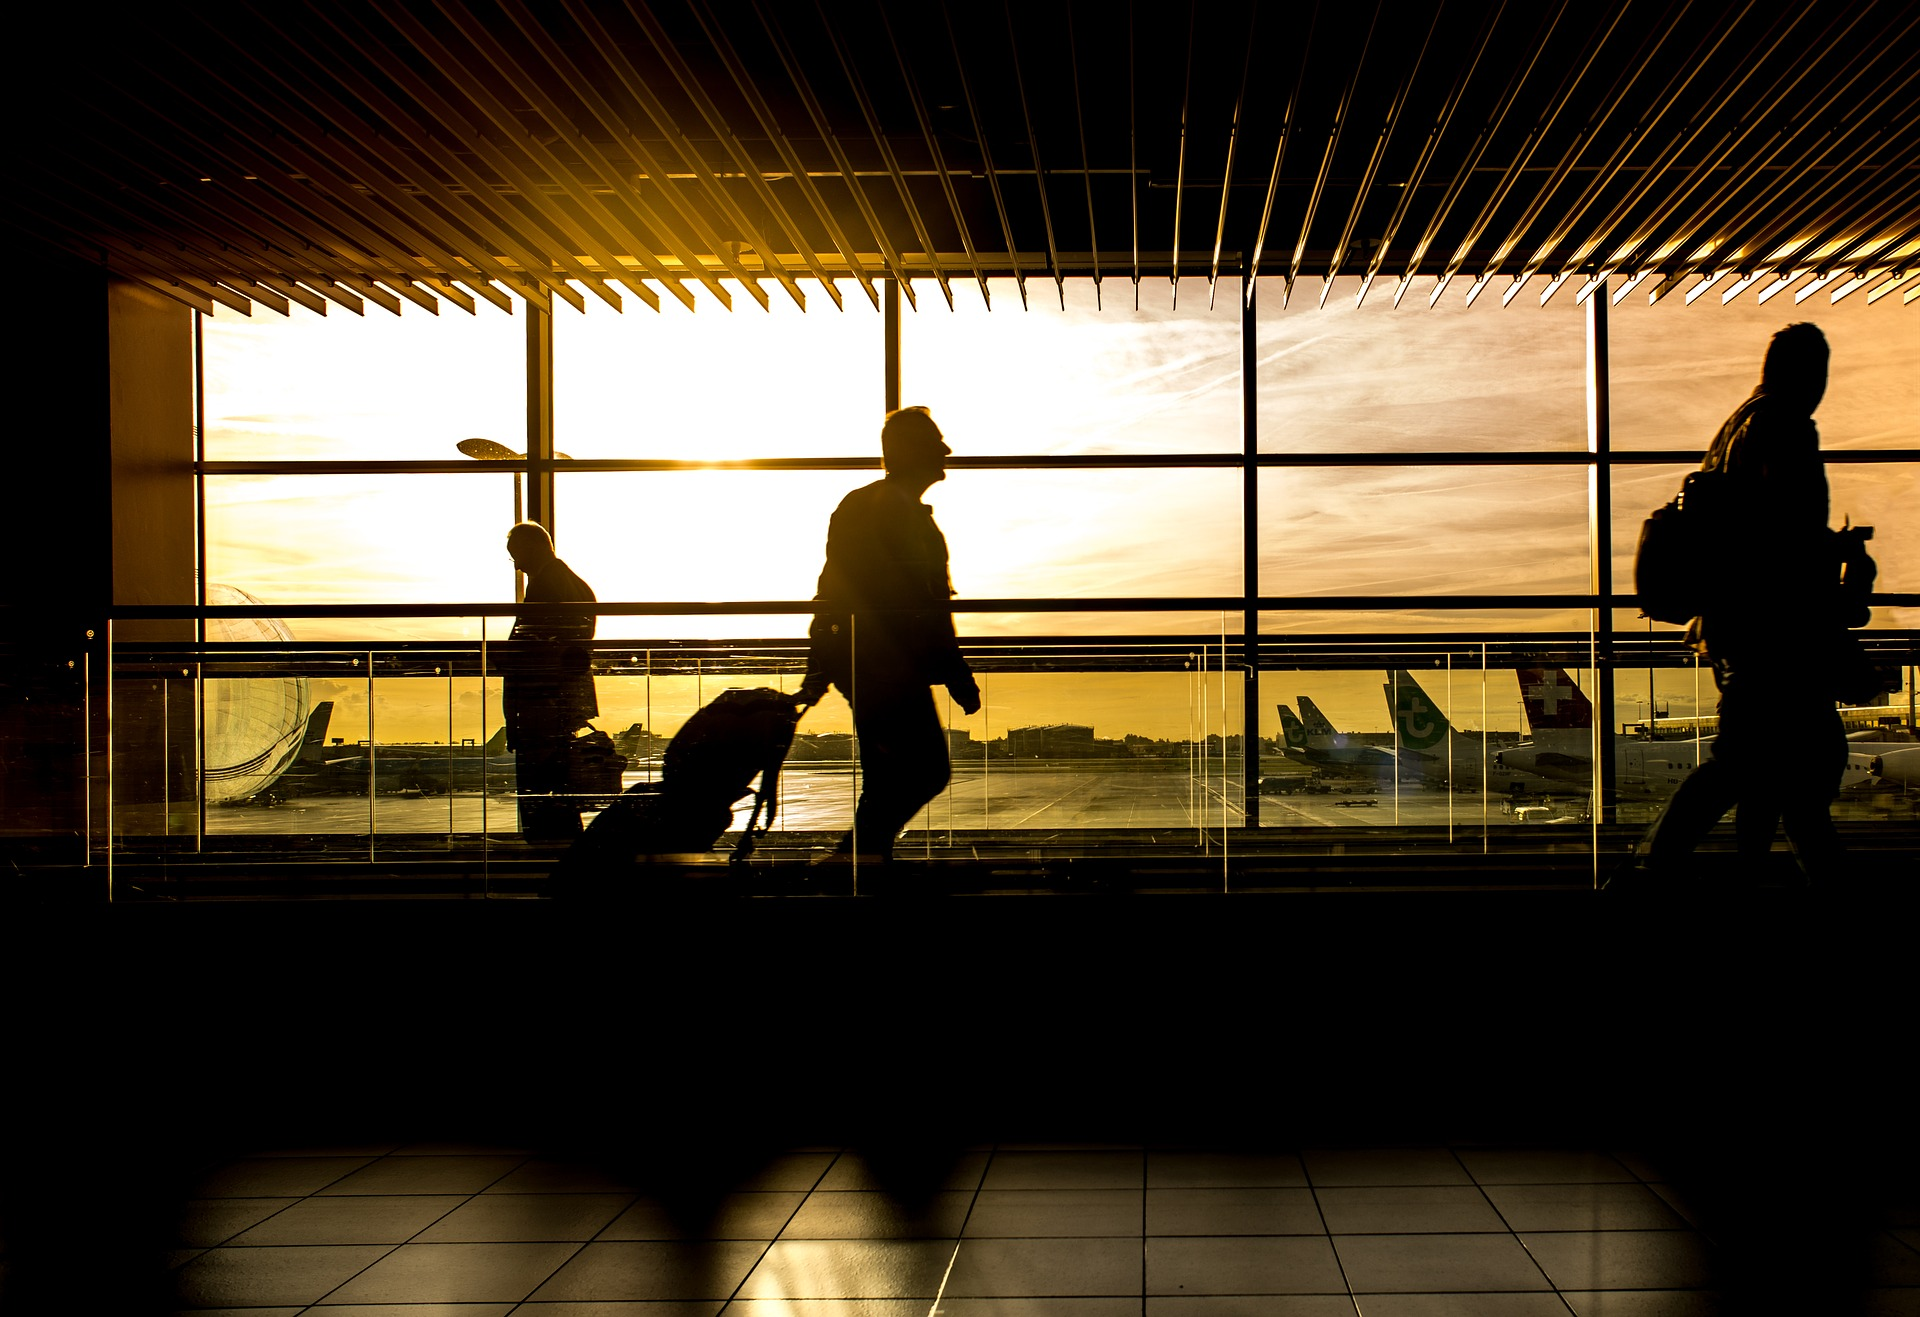 an image showing airport for business travel